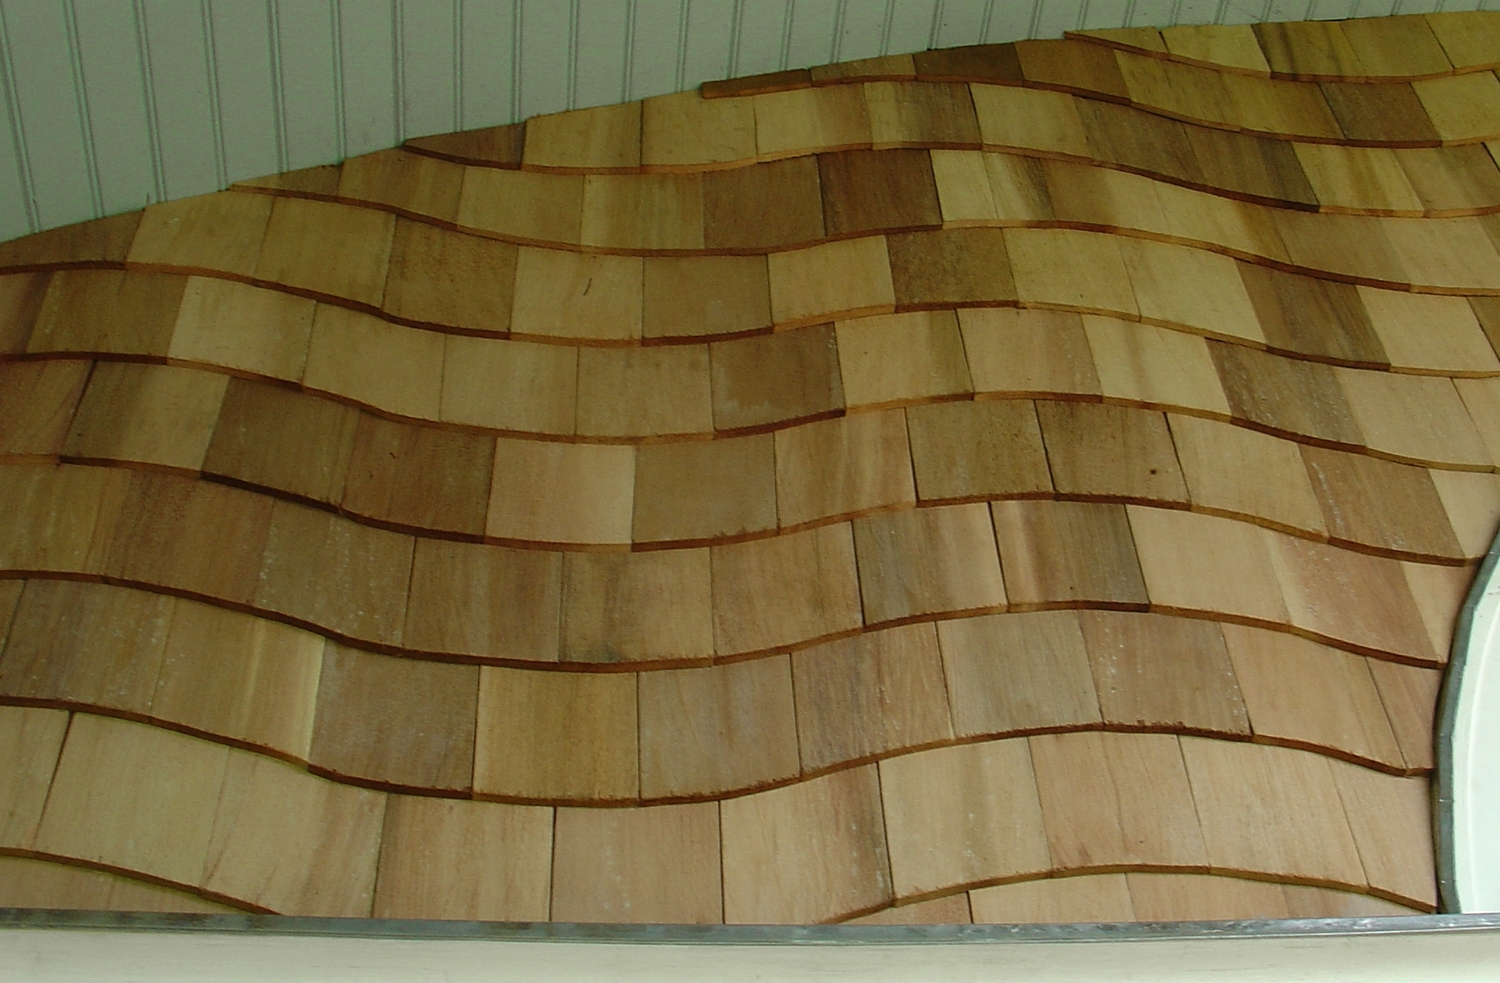 18 inch patterned wall shingles